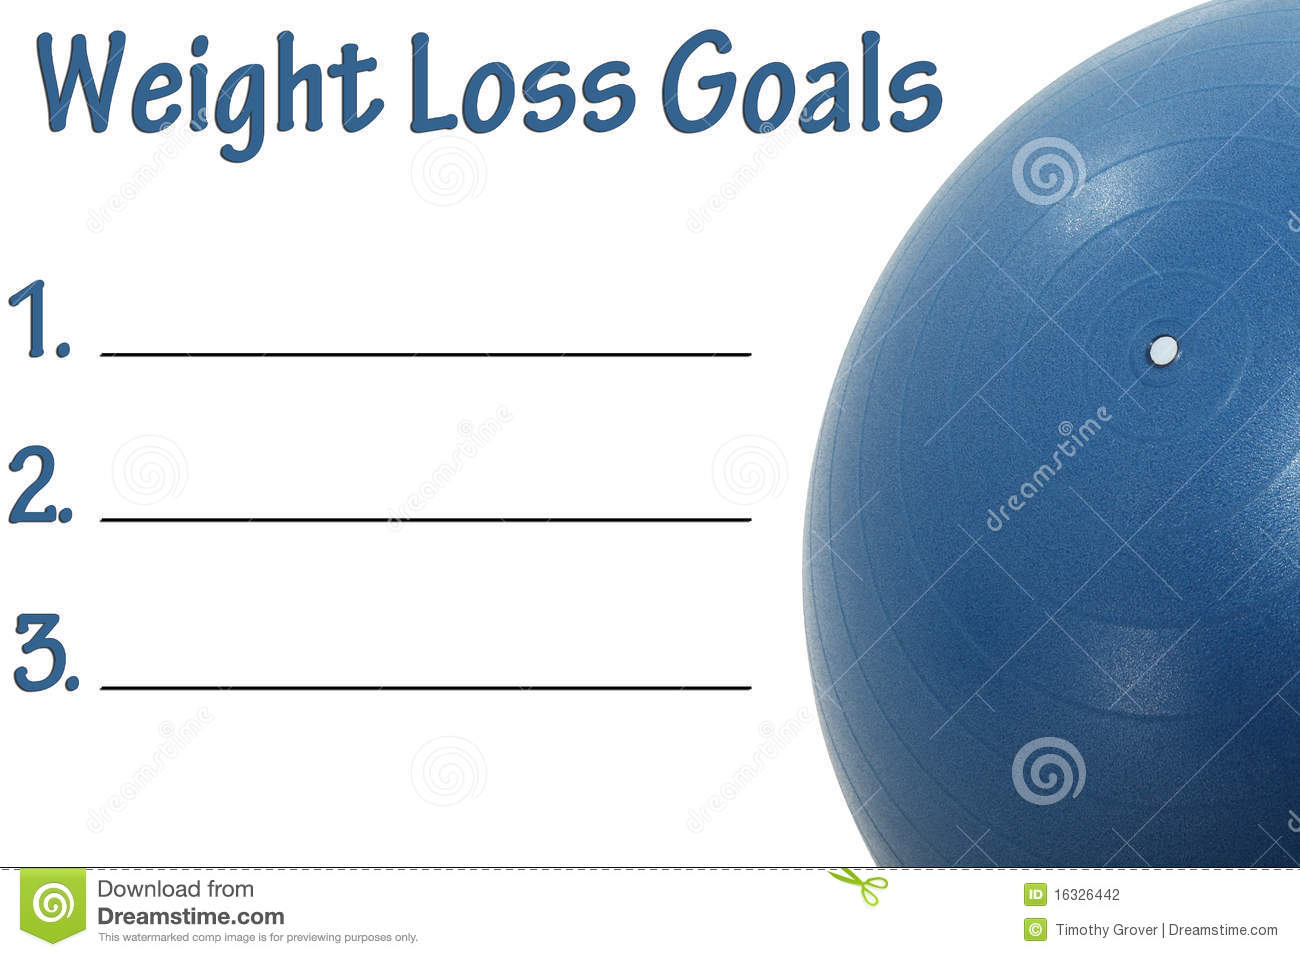 Diet to lose weight in 4 months picture 3